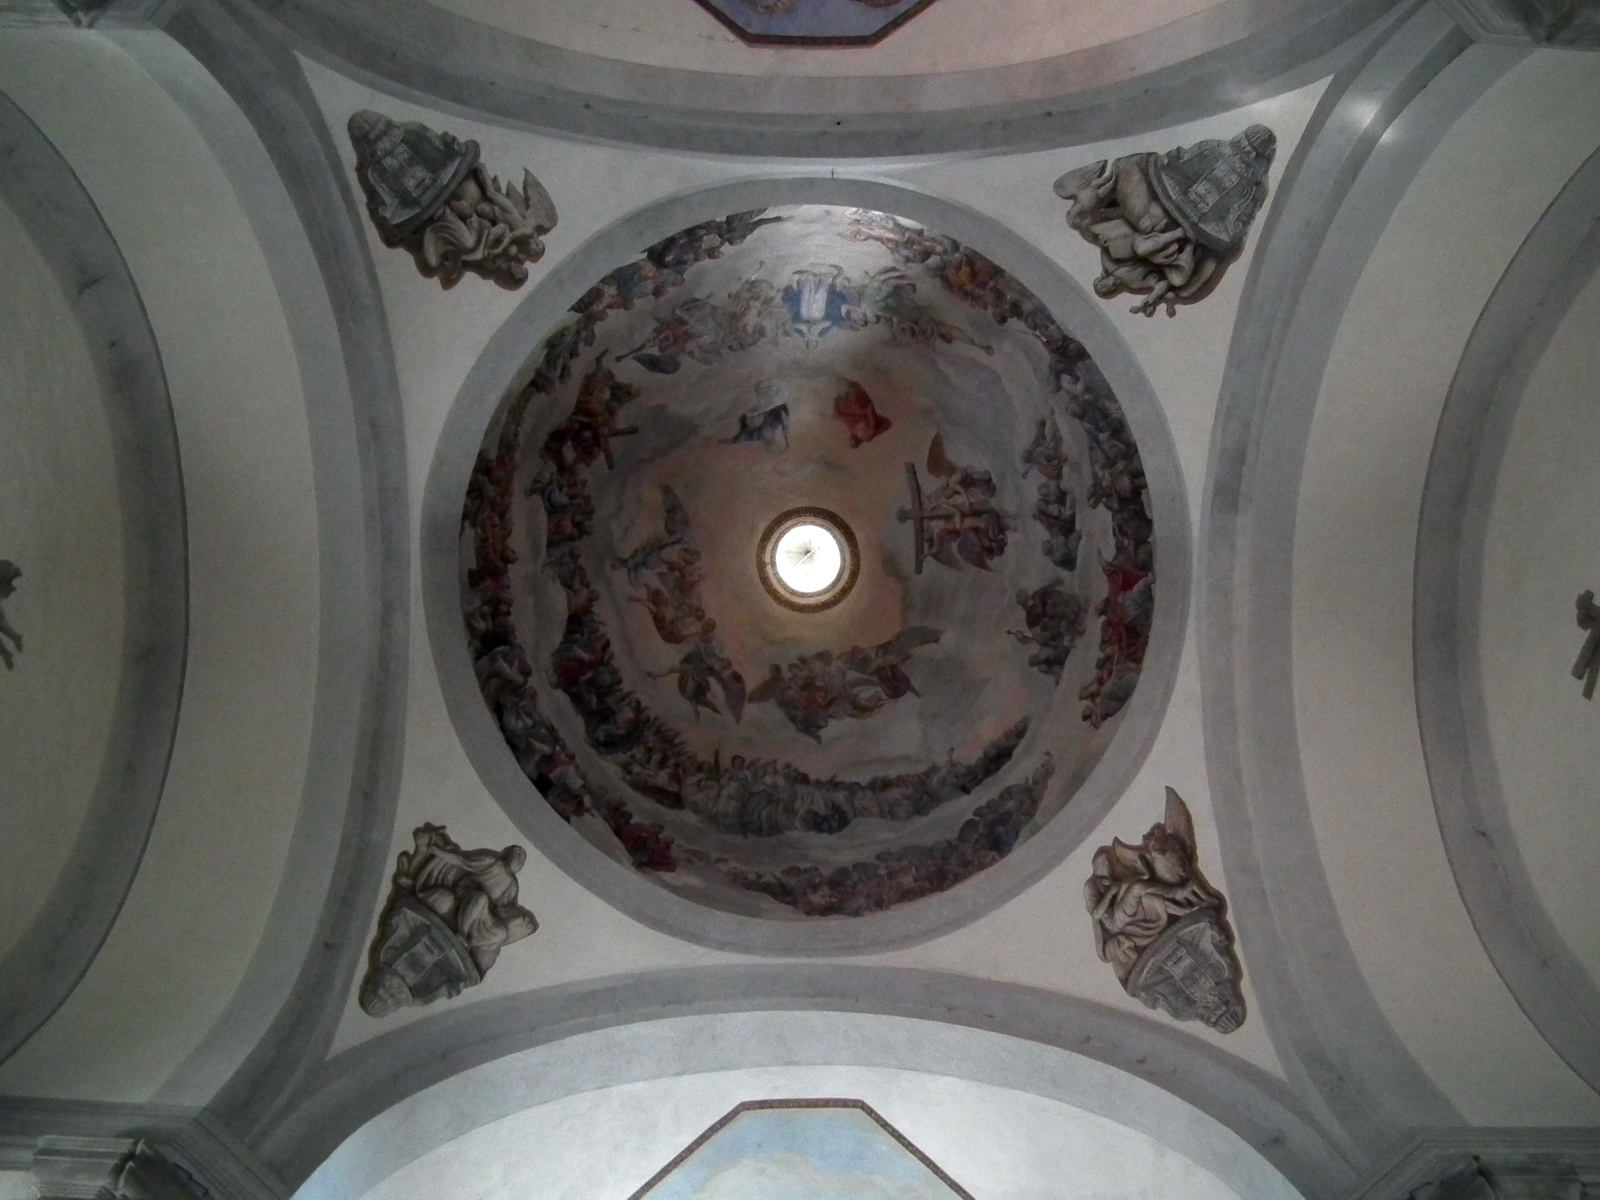 Pieve Santo Stefano Italy  City new picture : Original file  1,600 × 1,200 pixels, file size: 488 KB, MIME type ...